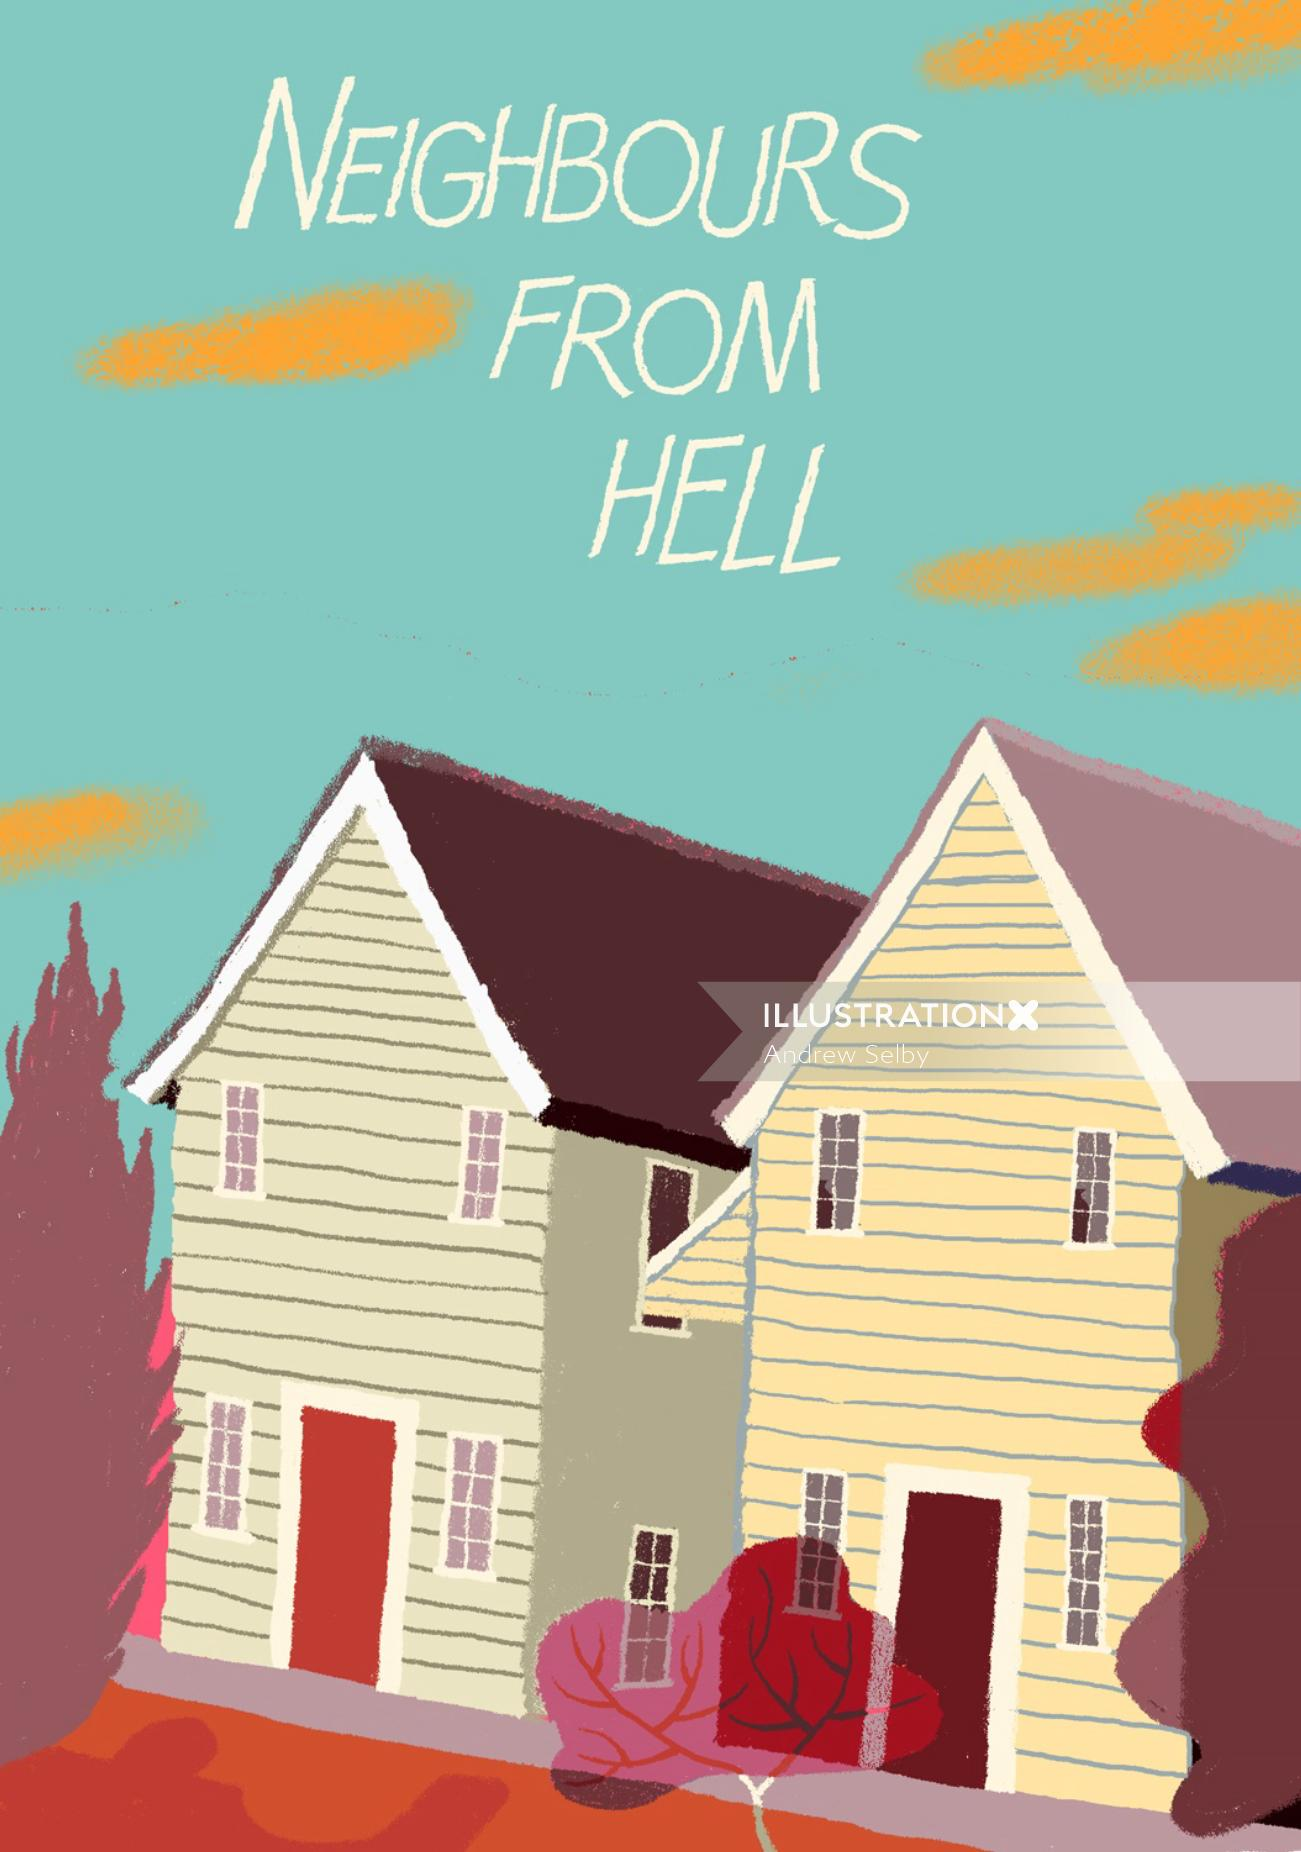 Neighbours from hell illustration